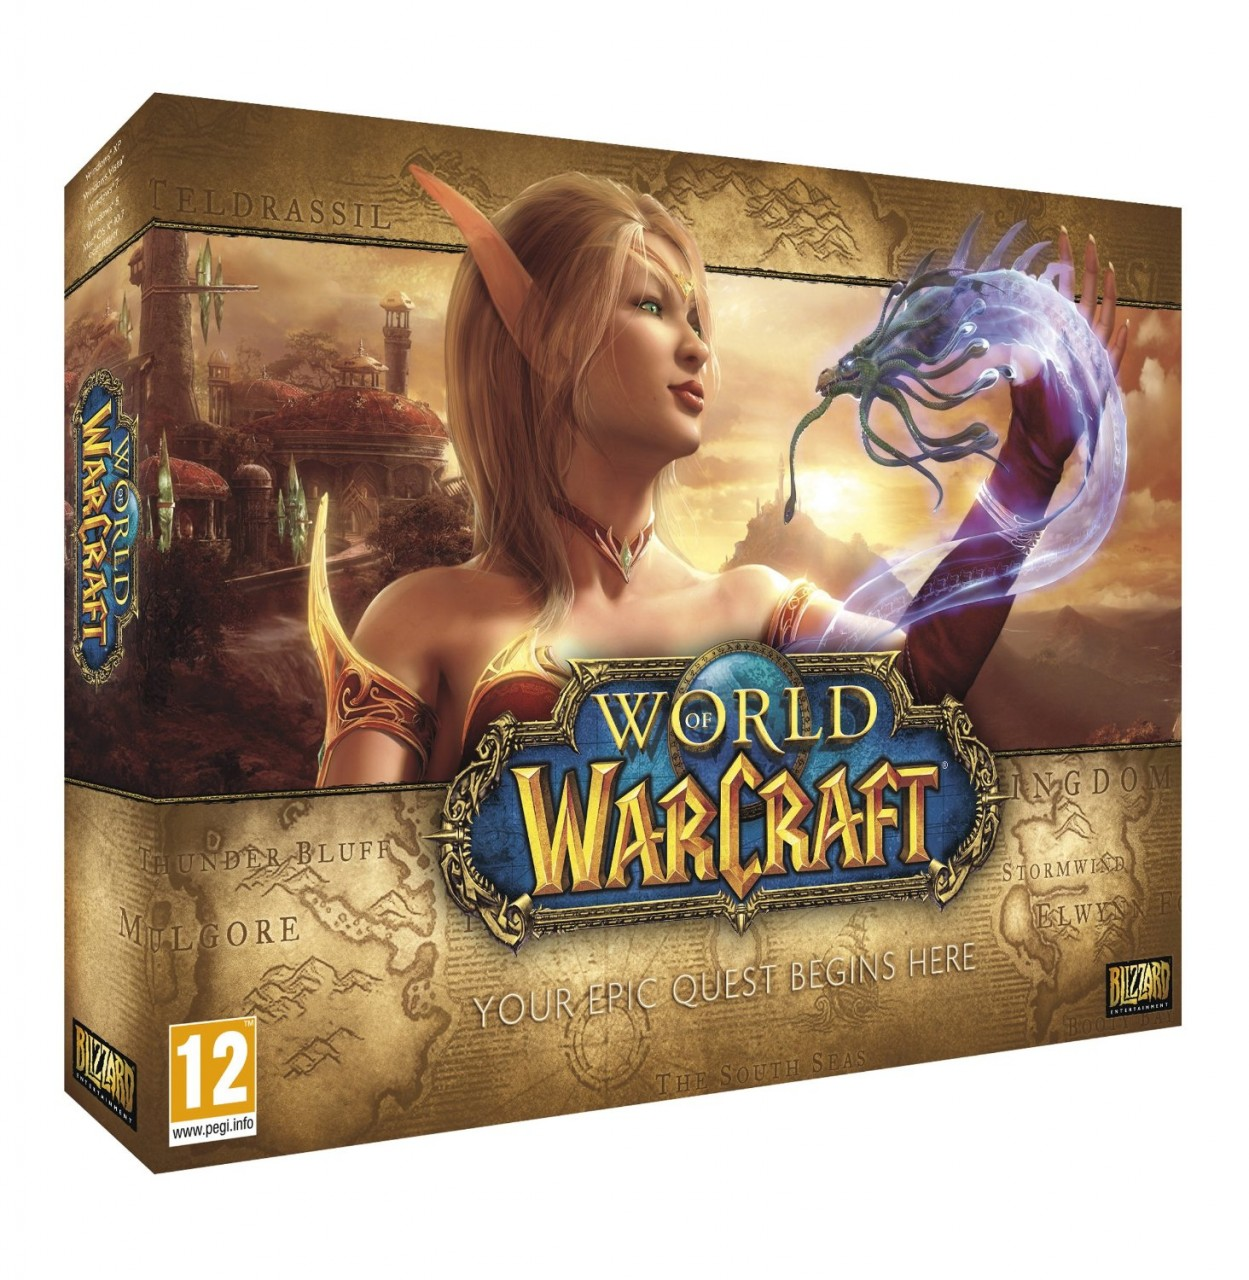 World of Warcraft: Battle Chest (USA) + 30 days